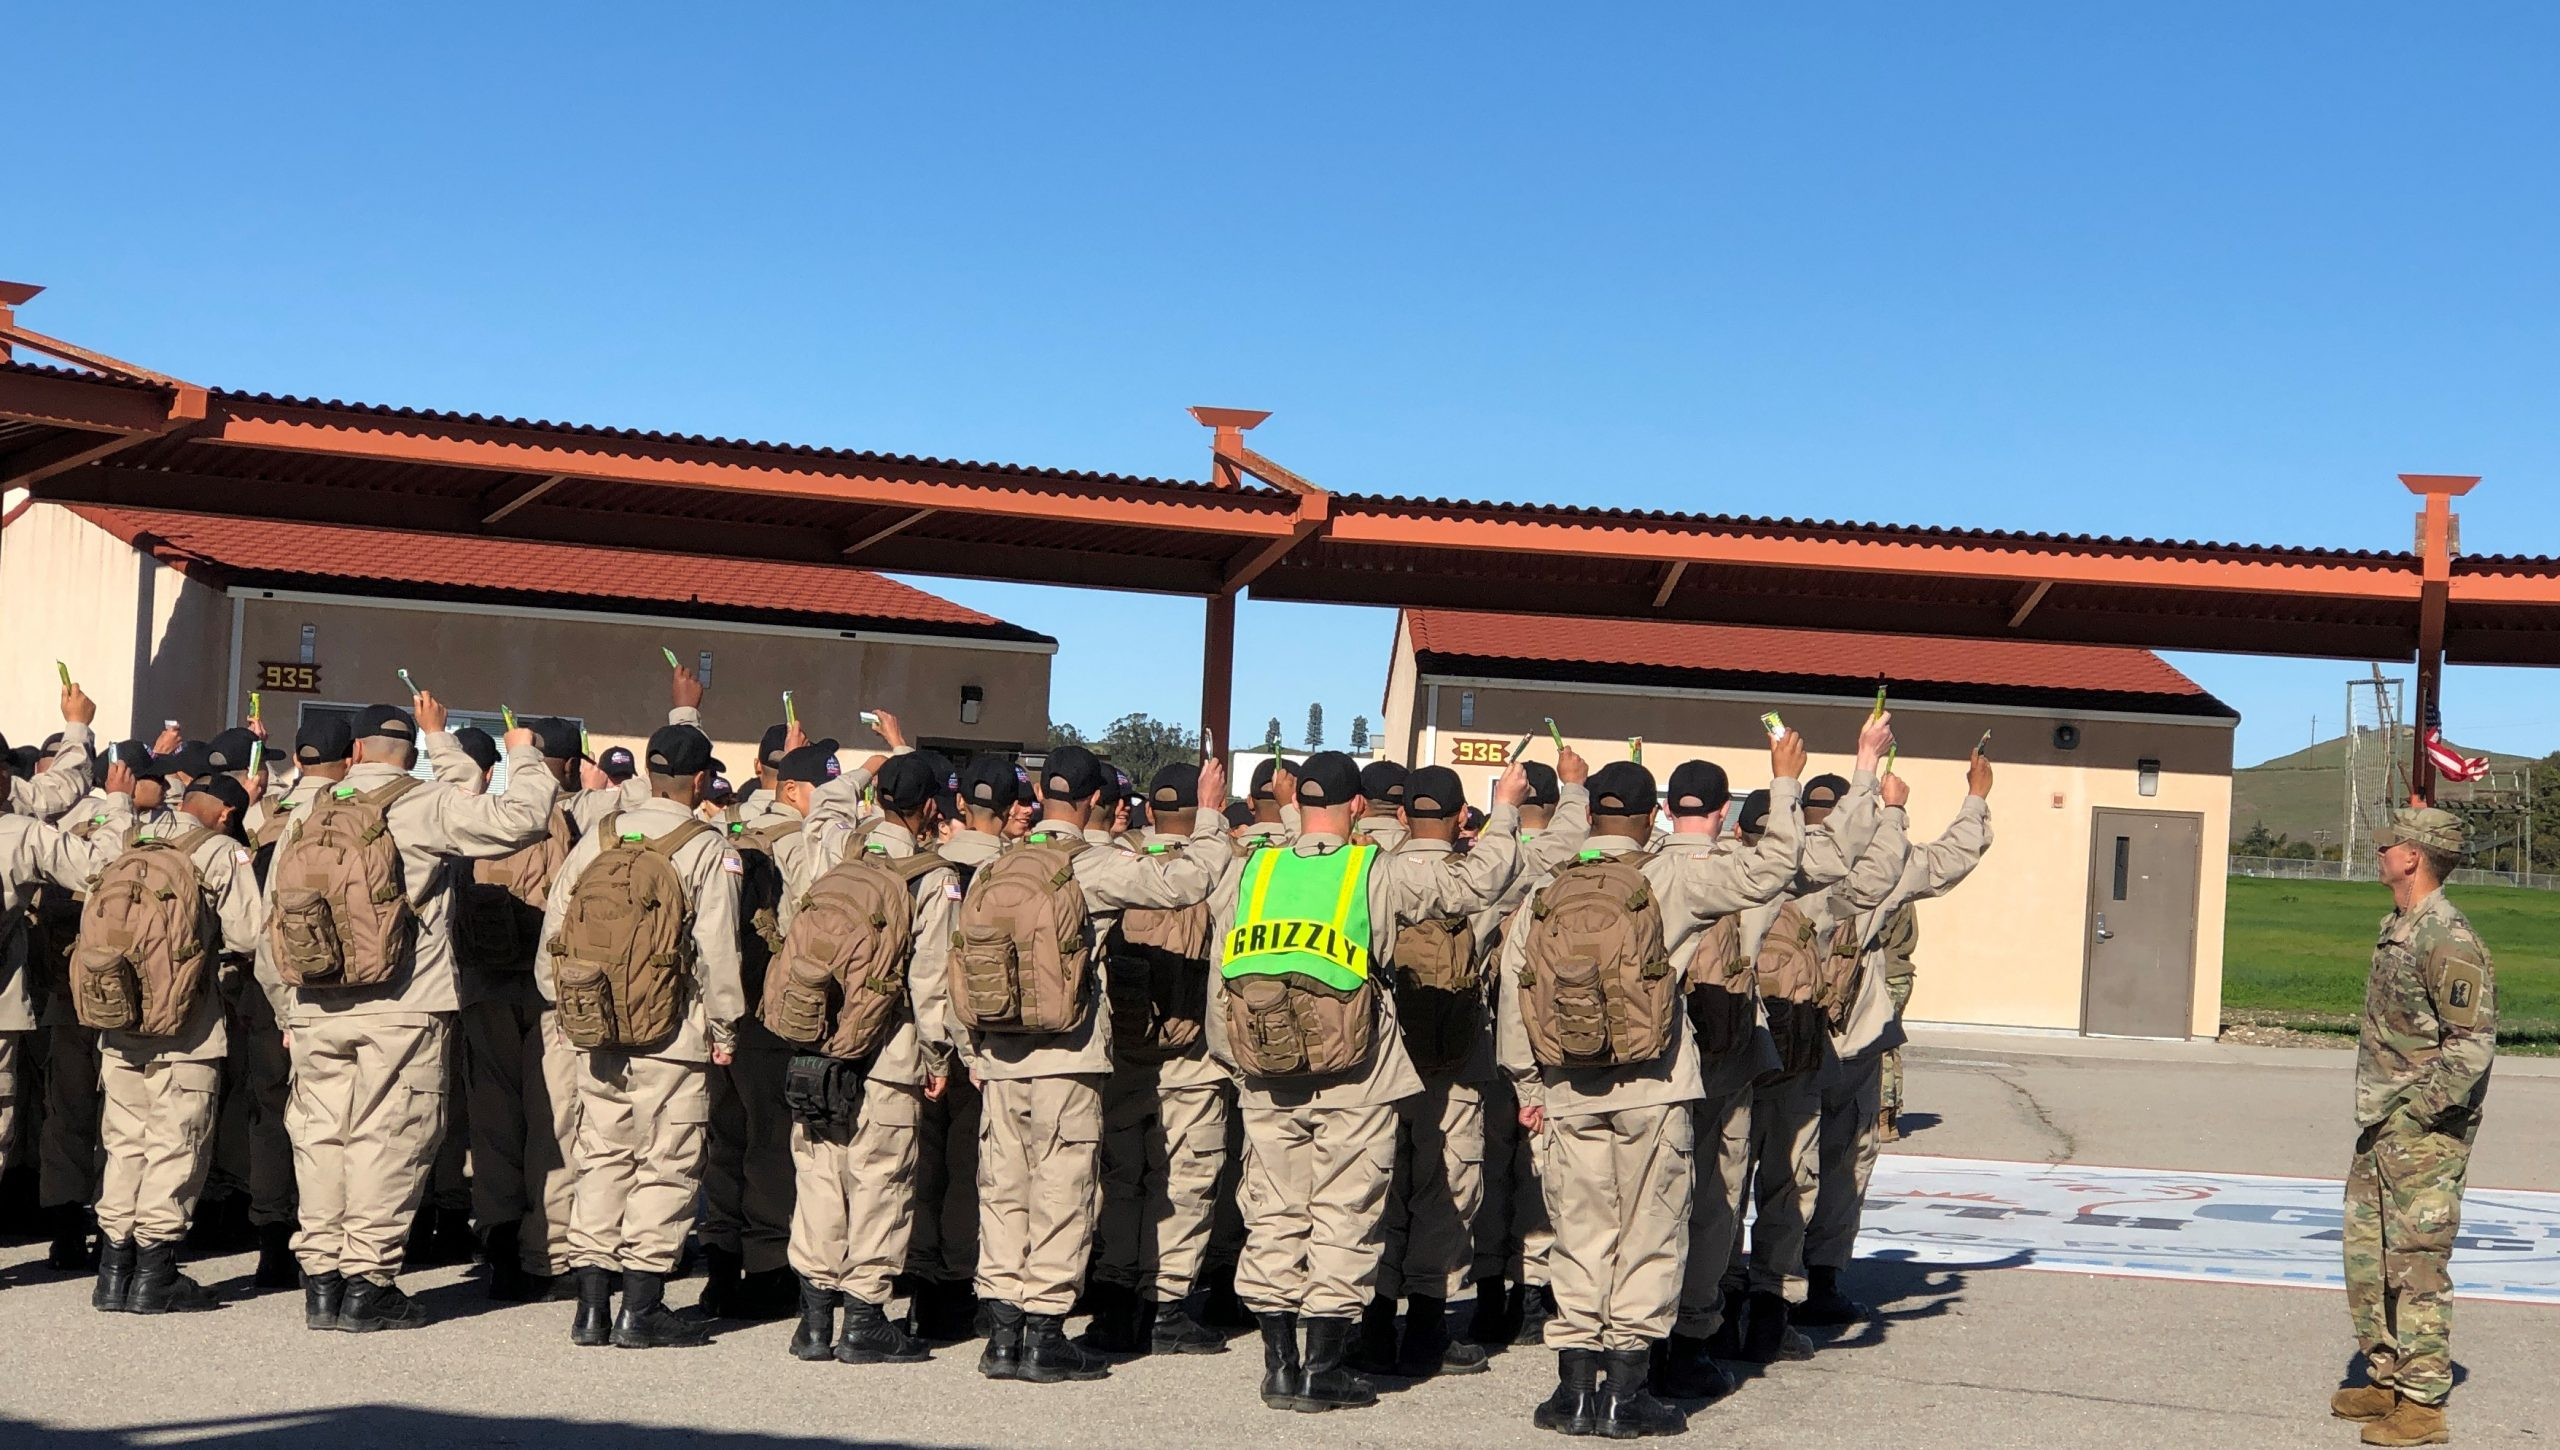 New Grizzly Cadets line up for Snack break